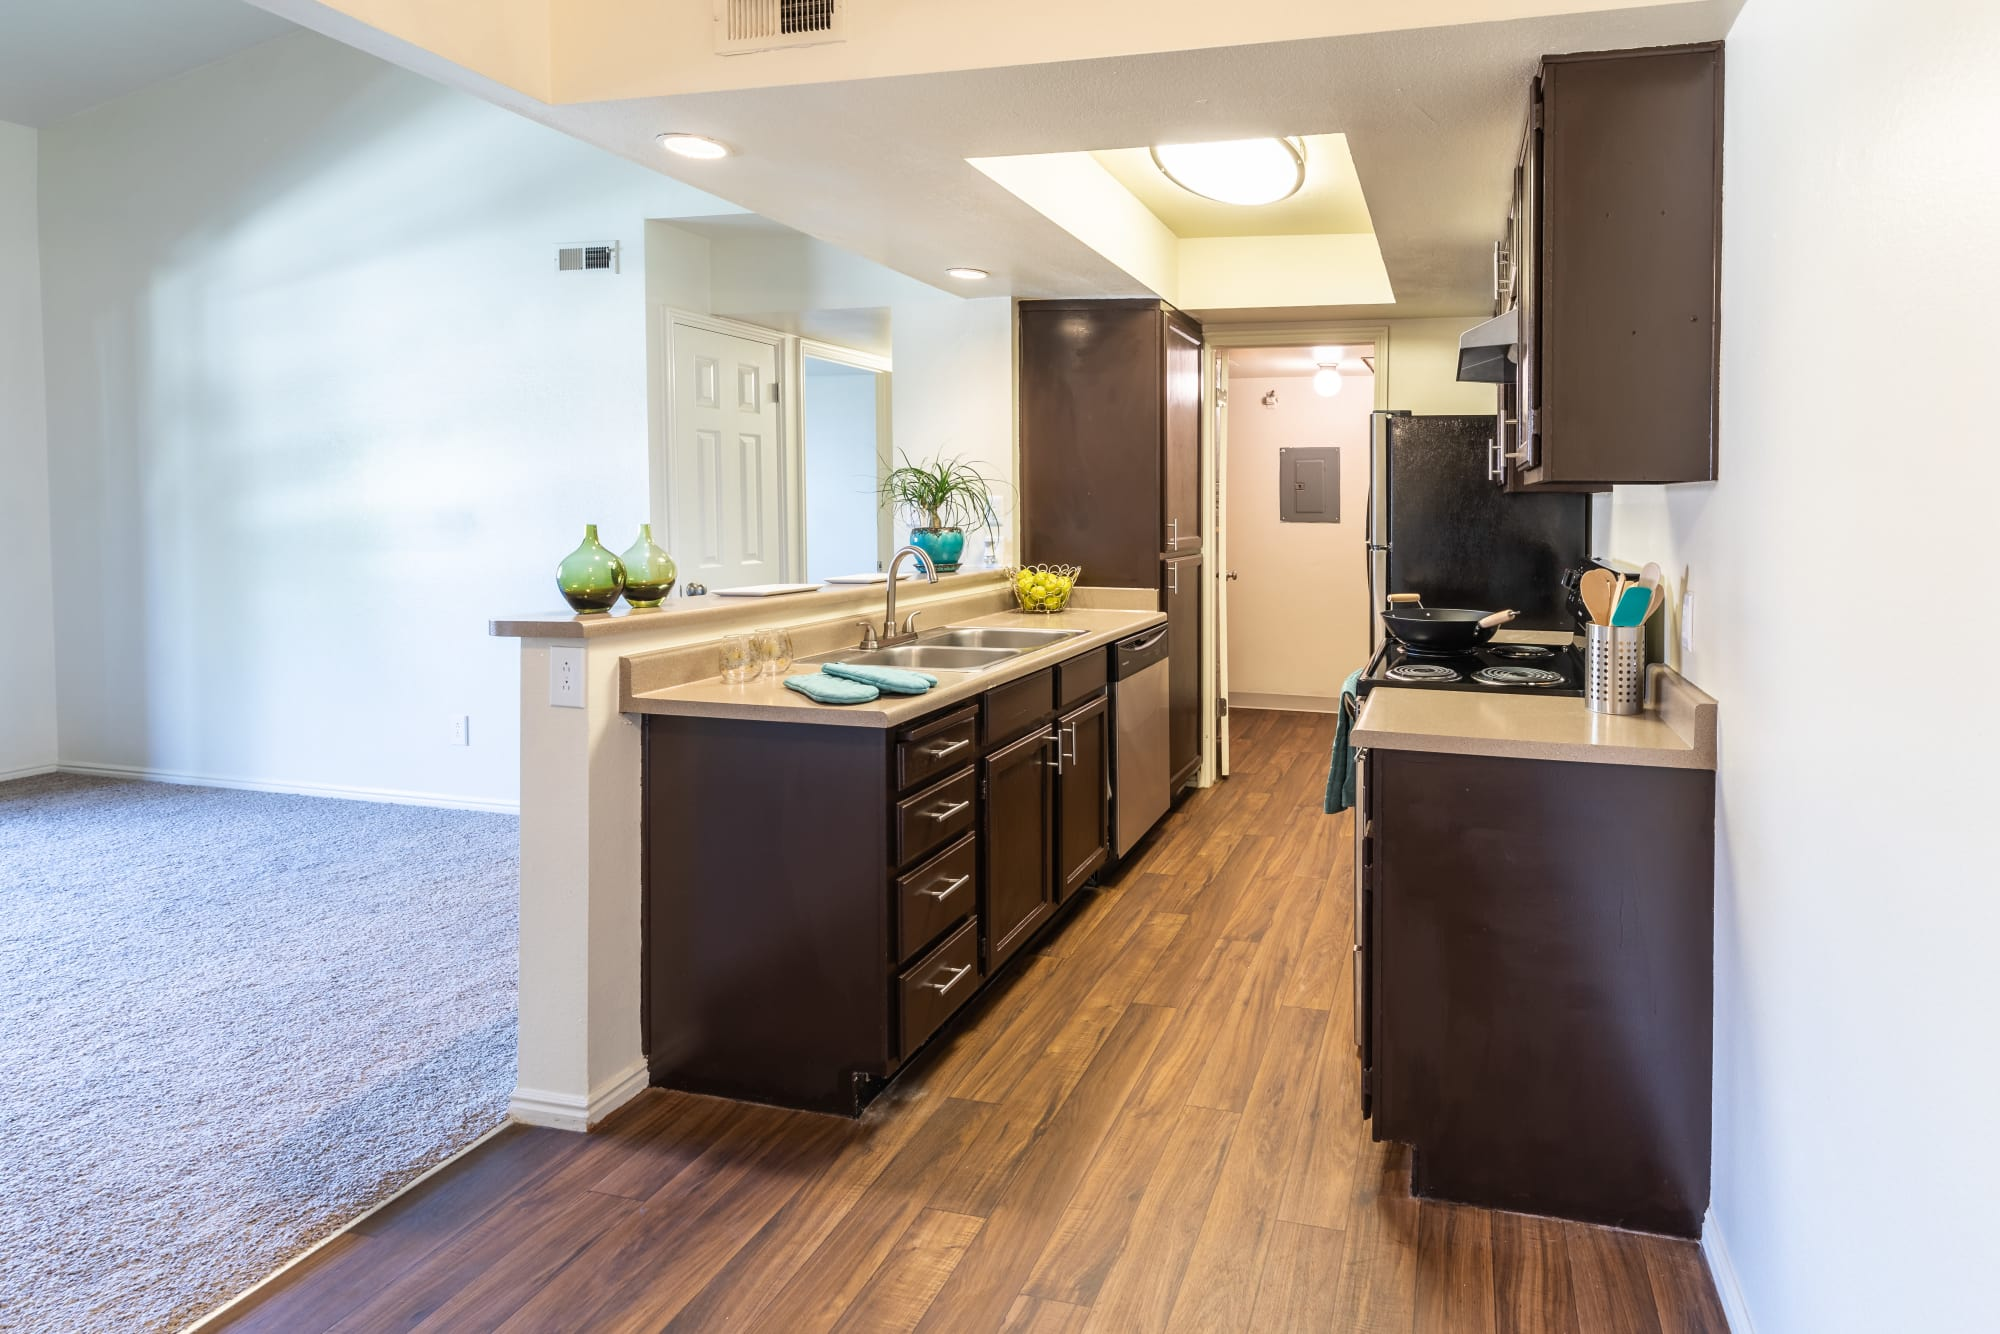 Spacious Kitchen Room with View into Living Room at Shadowbrook Apartments in West Valley City, UT